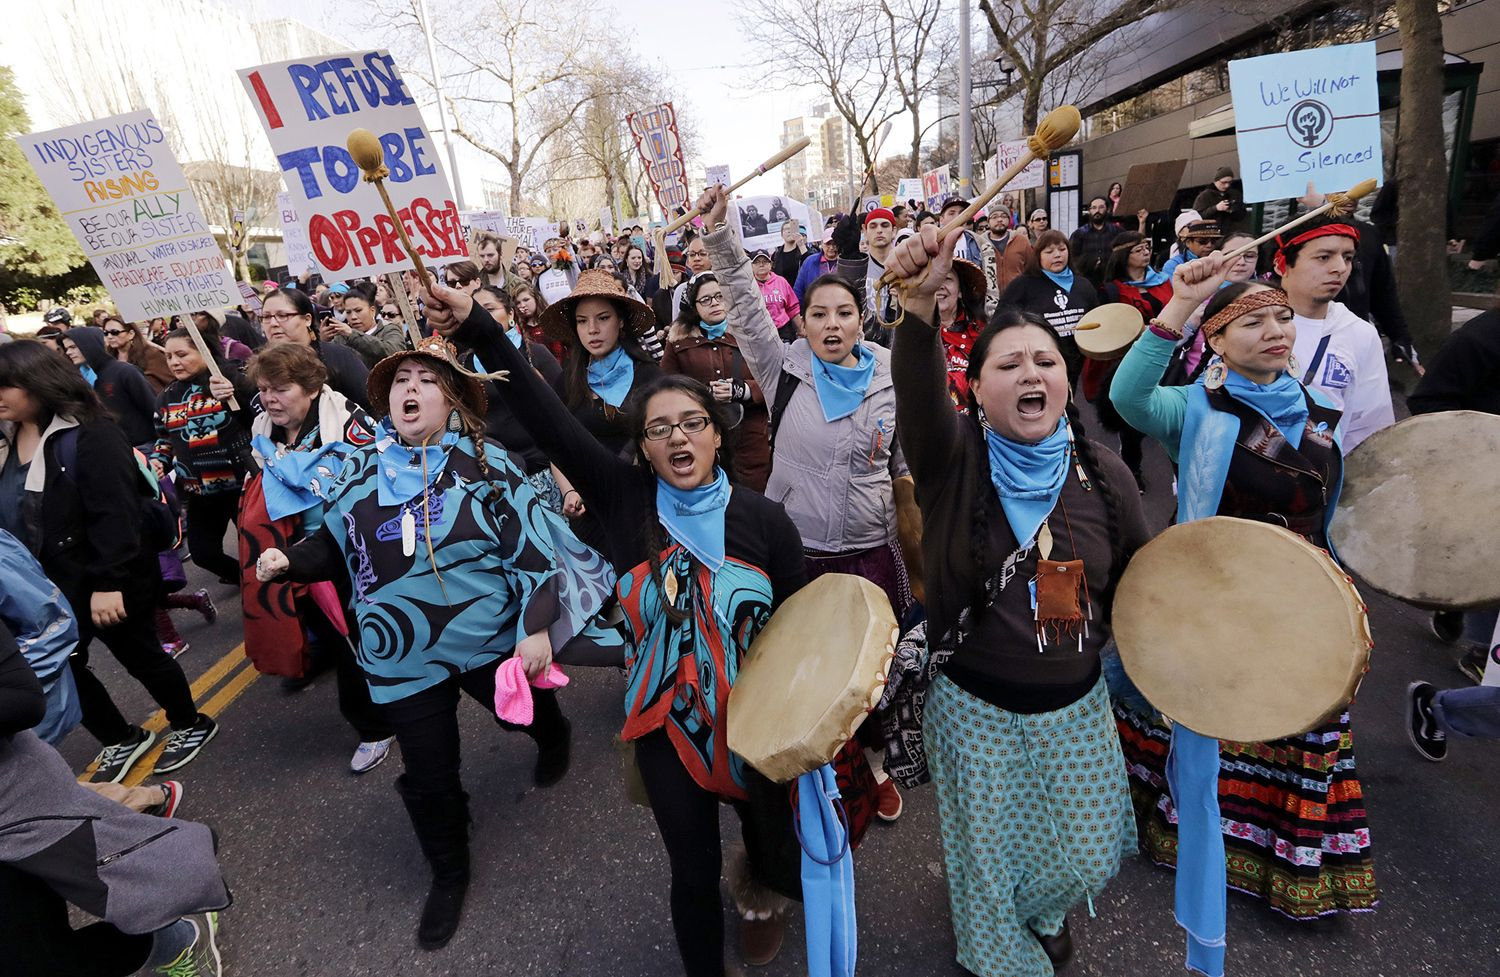 In Seattle, Washington, native American women singers and drummers lead a women's march of thousands as it arrives at the Seattle Center, on January 21, 2017. Women across the Pacific Northwest marched in solidarity with the Women's March on Washington and to send a message in support of women's rights and other causes | The Atlantic.